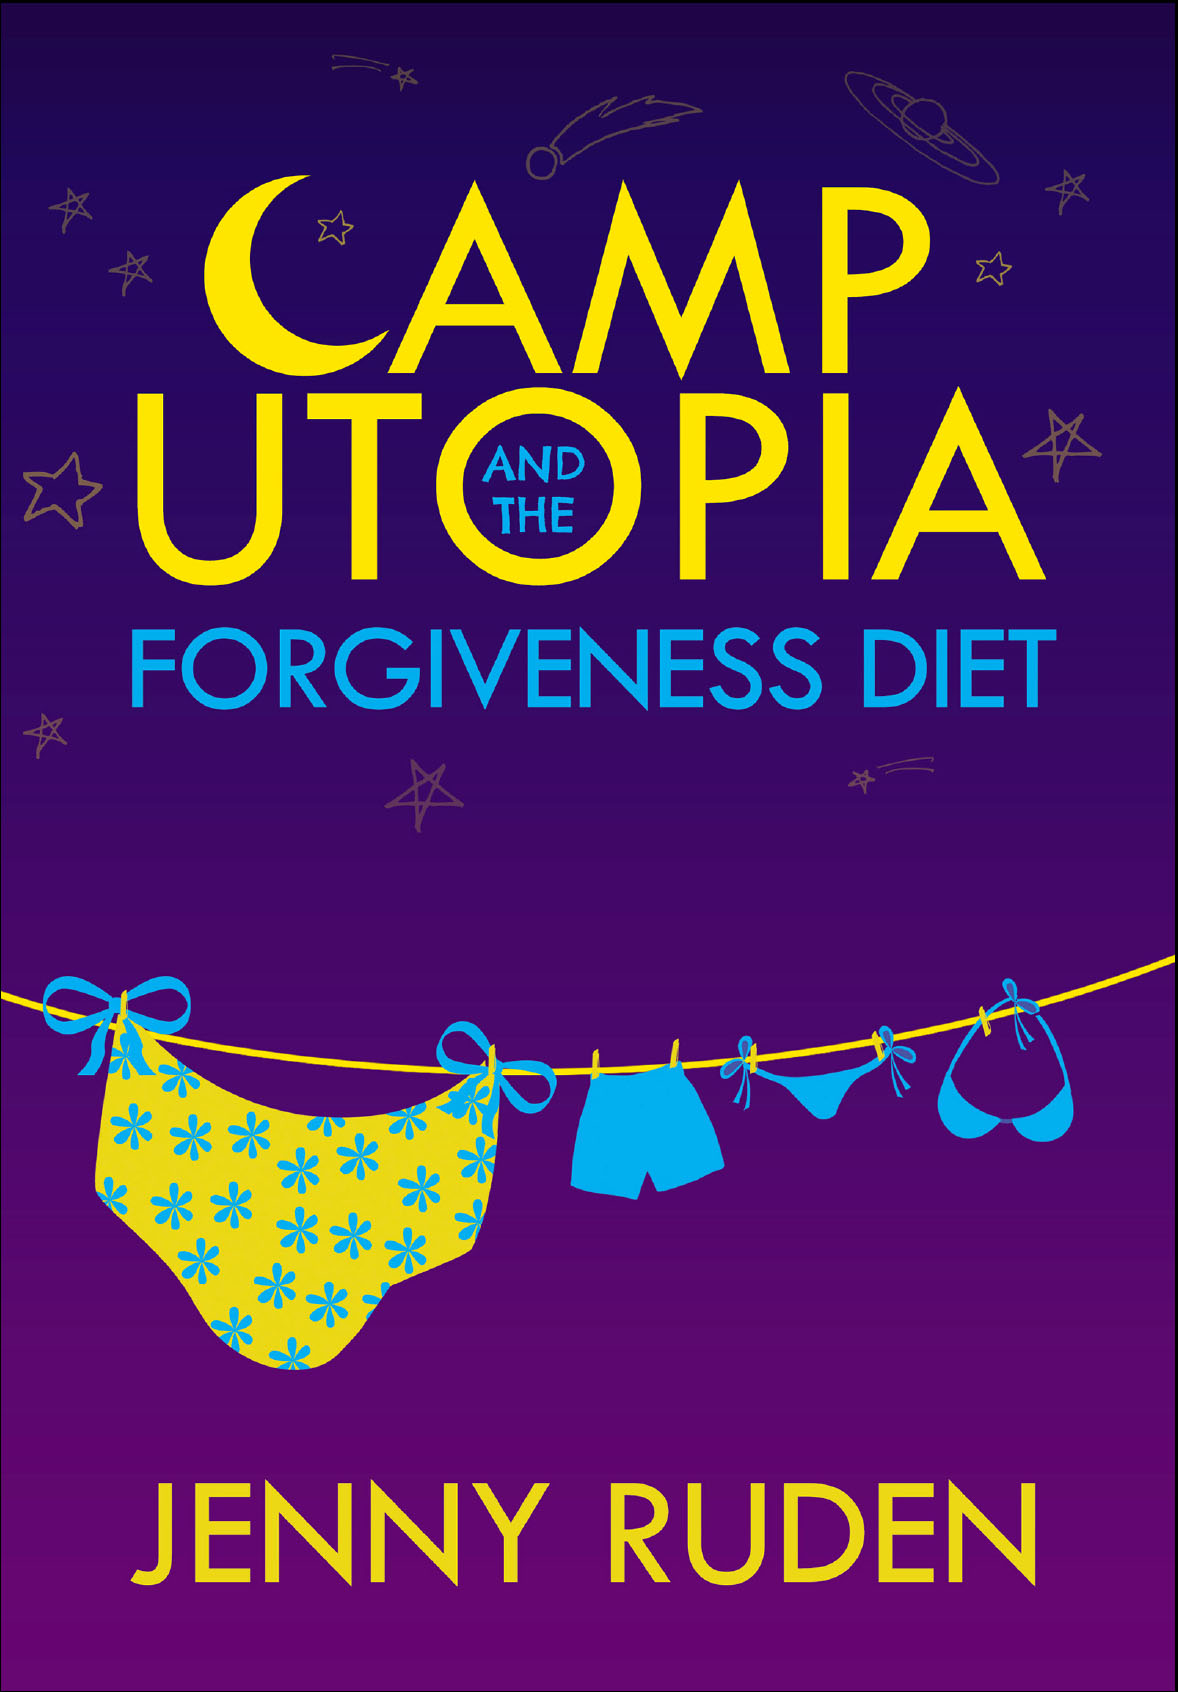 Camp Utopia & the Forgiveness Diet (9781940192567) (2014) by Ruden, Jenny